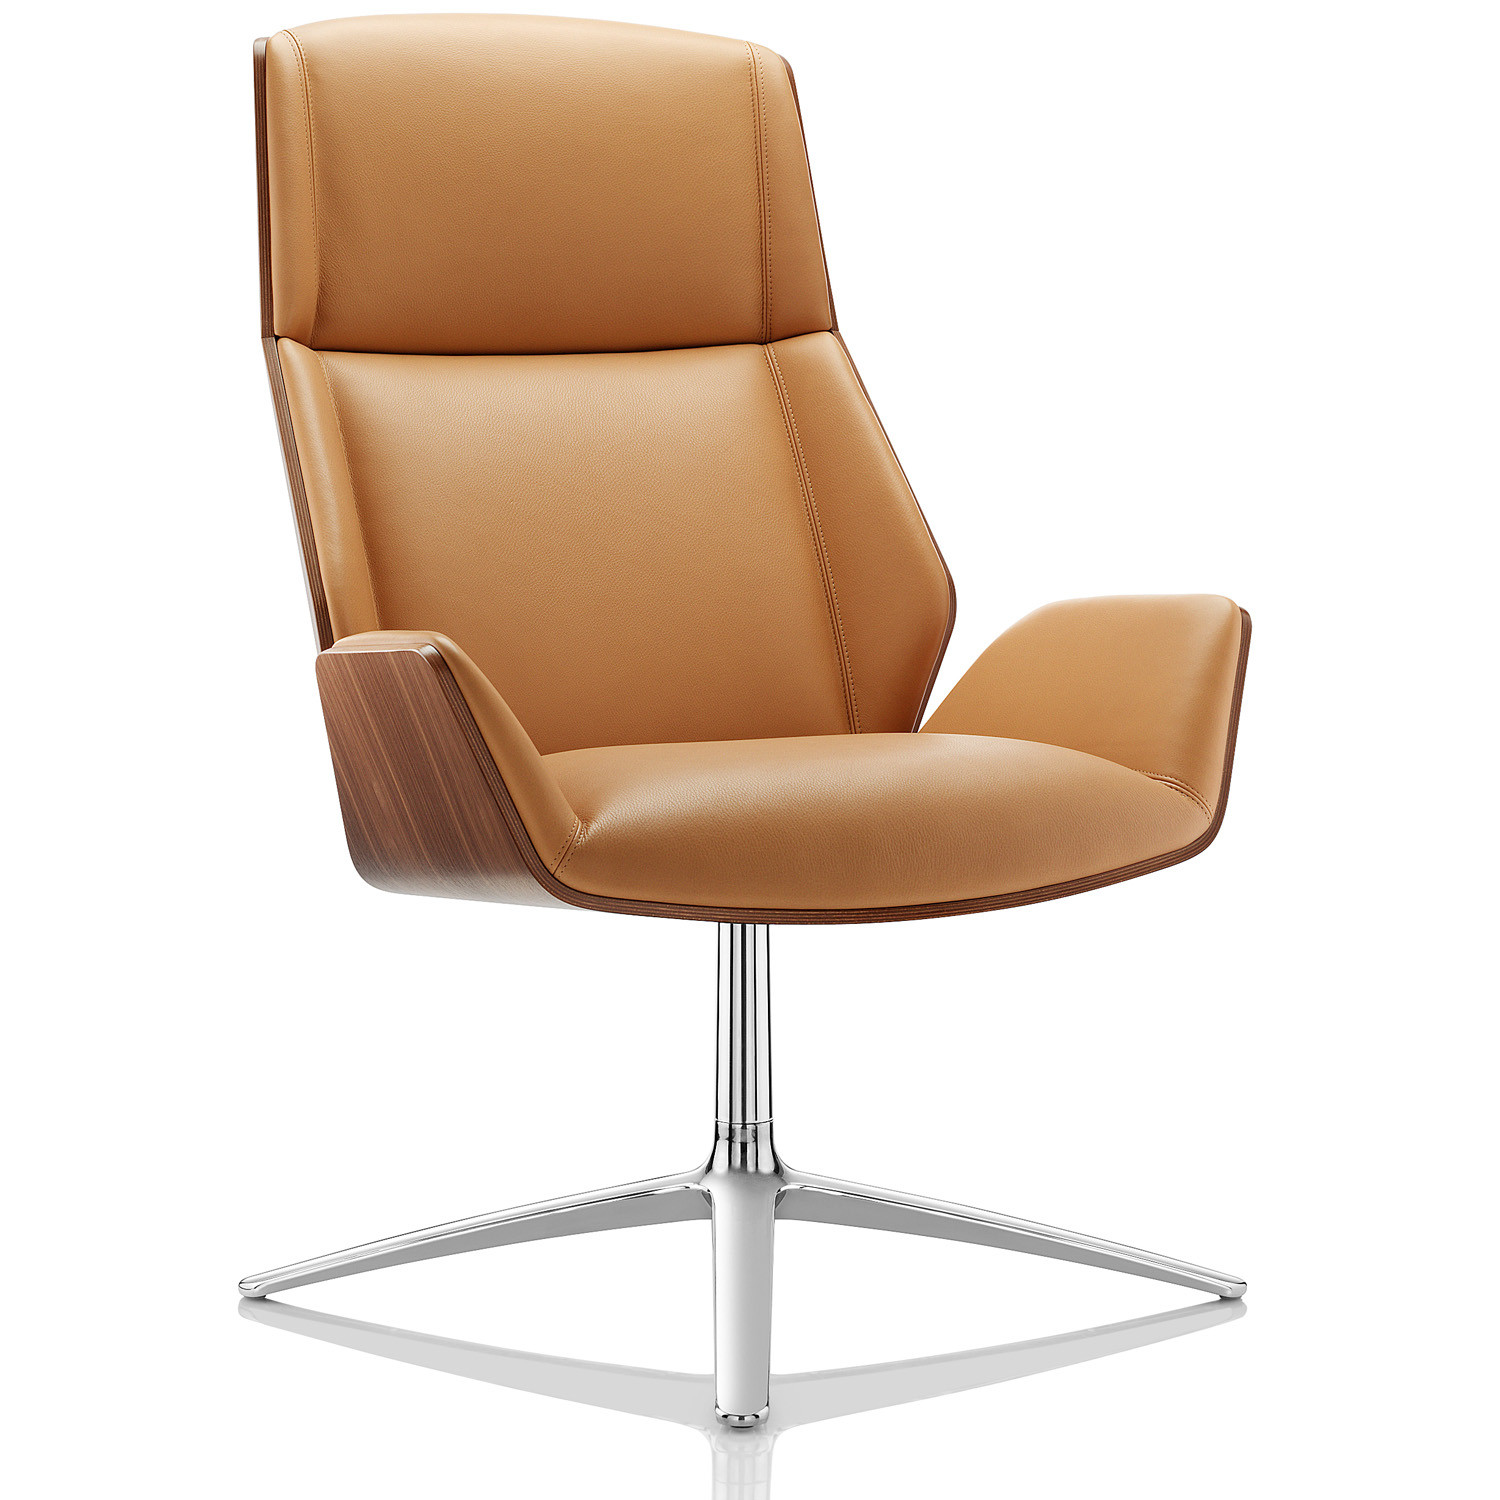 Kruze High Back Lounge Chair by Boss Design